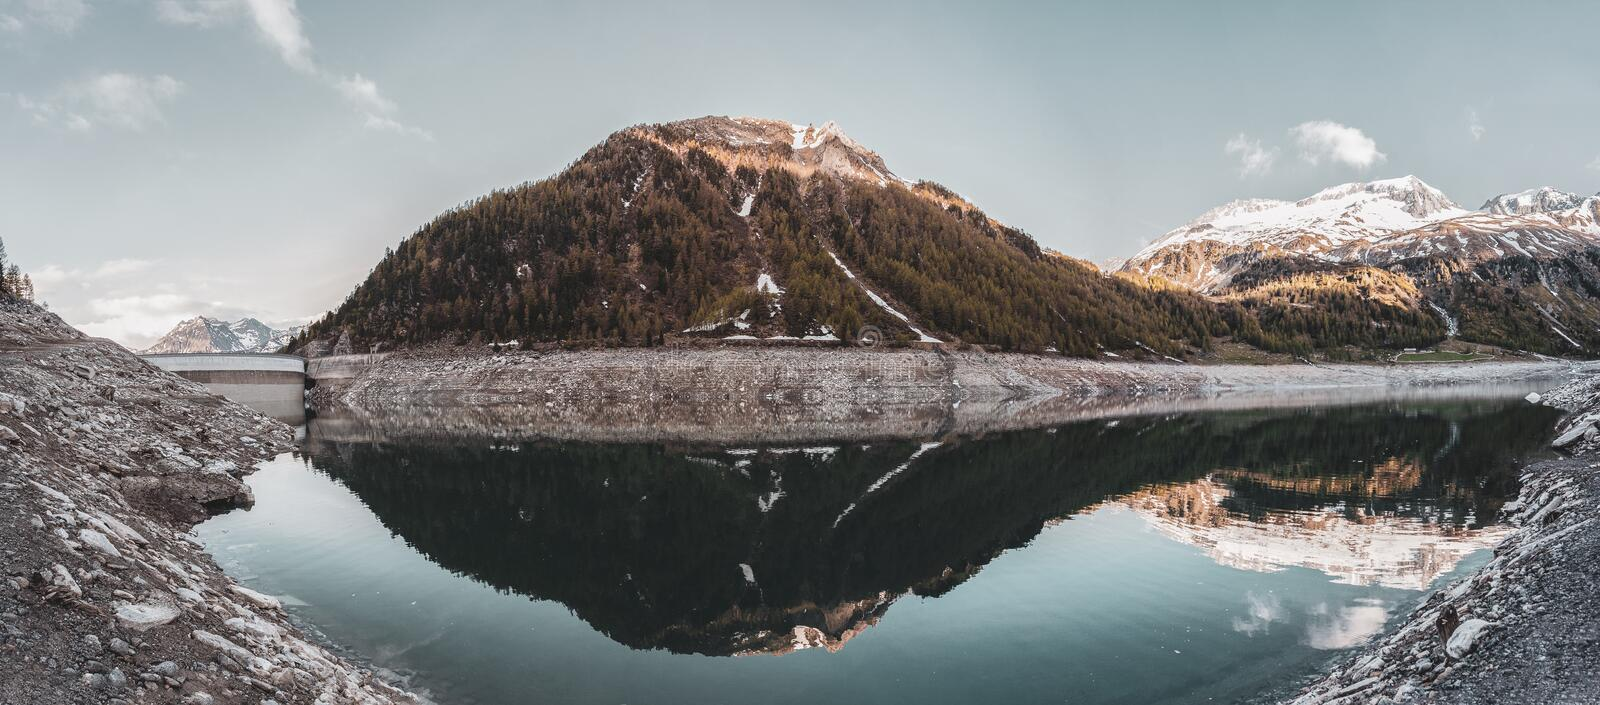 Green Covered Mountain Reflected on Calm Water Under Clear Sky Landscape Photo royalty free stock photos